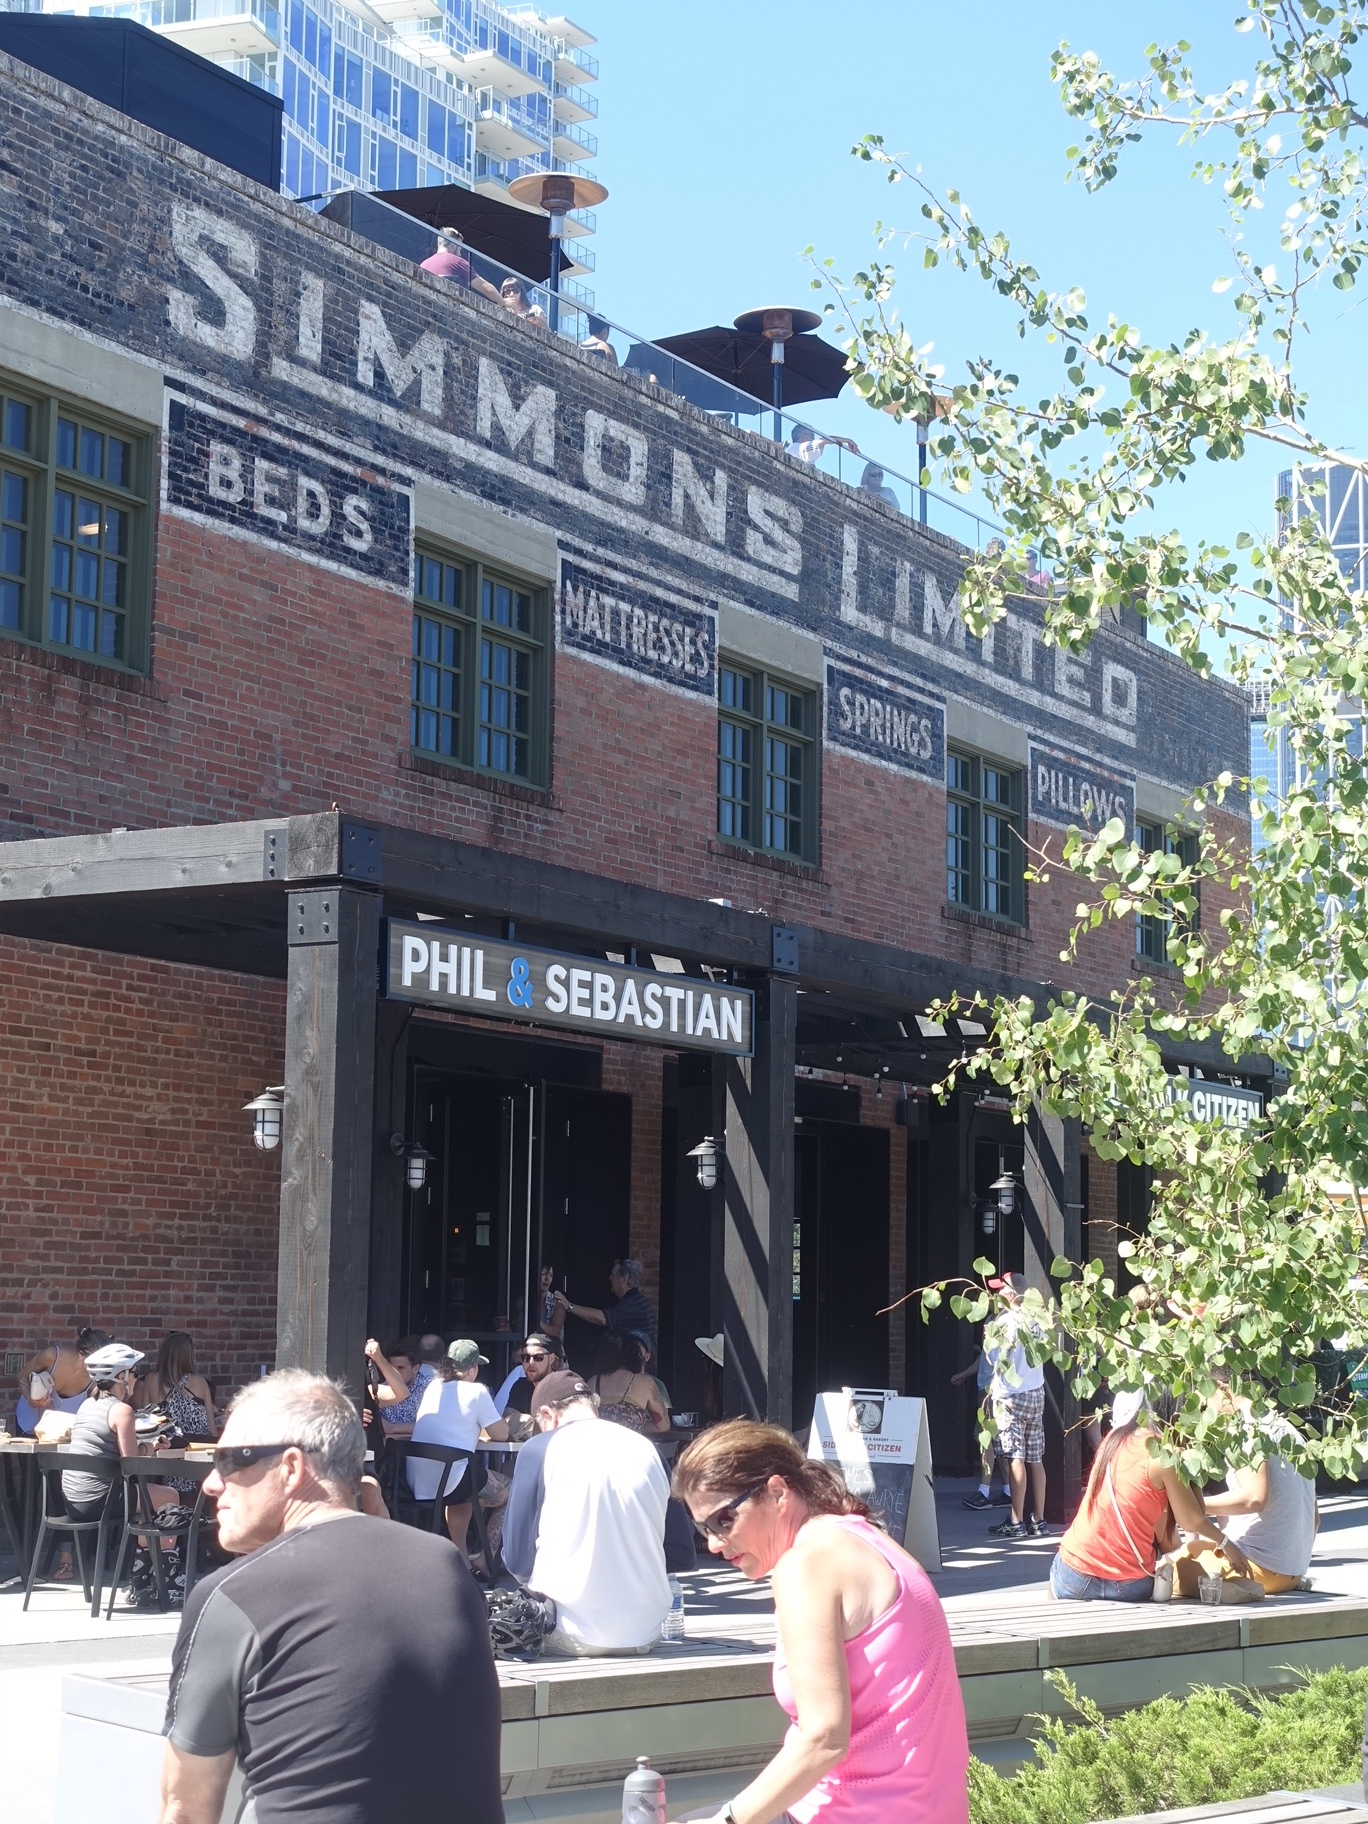 Simmons building is a popular meeting spot on the weekends as it is right on the Riverwalk which is part of the Bow River pathway system.